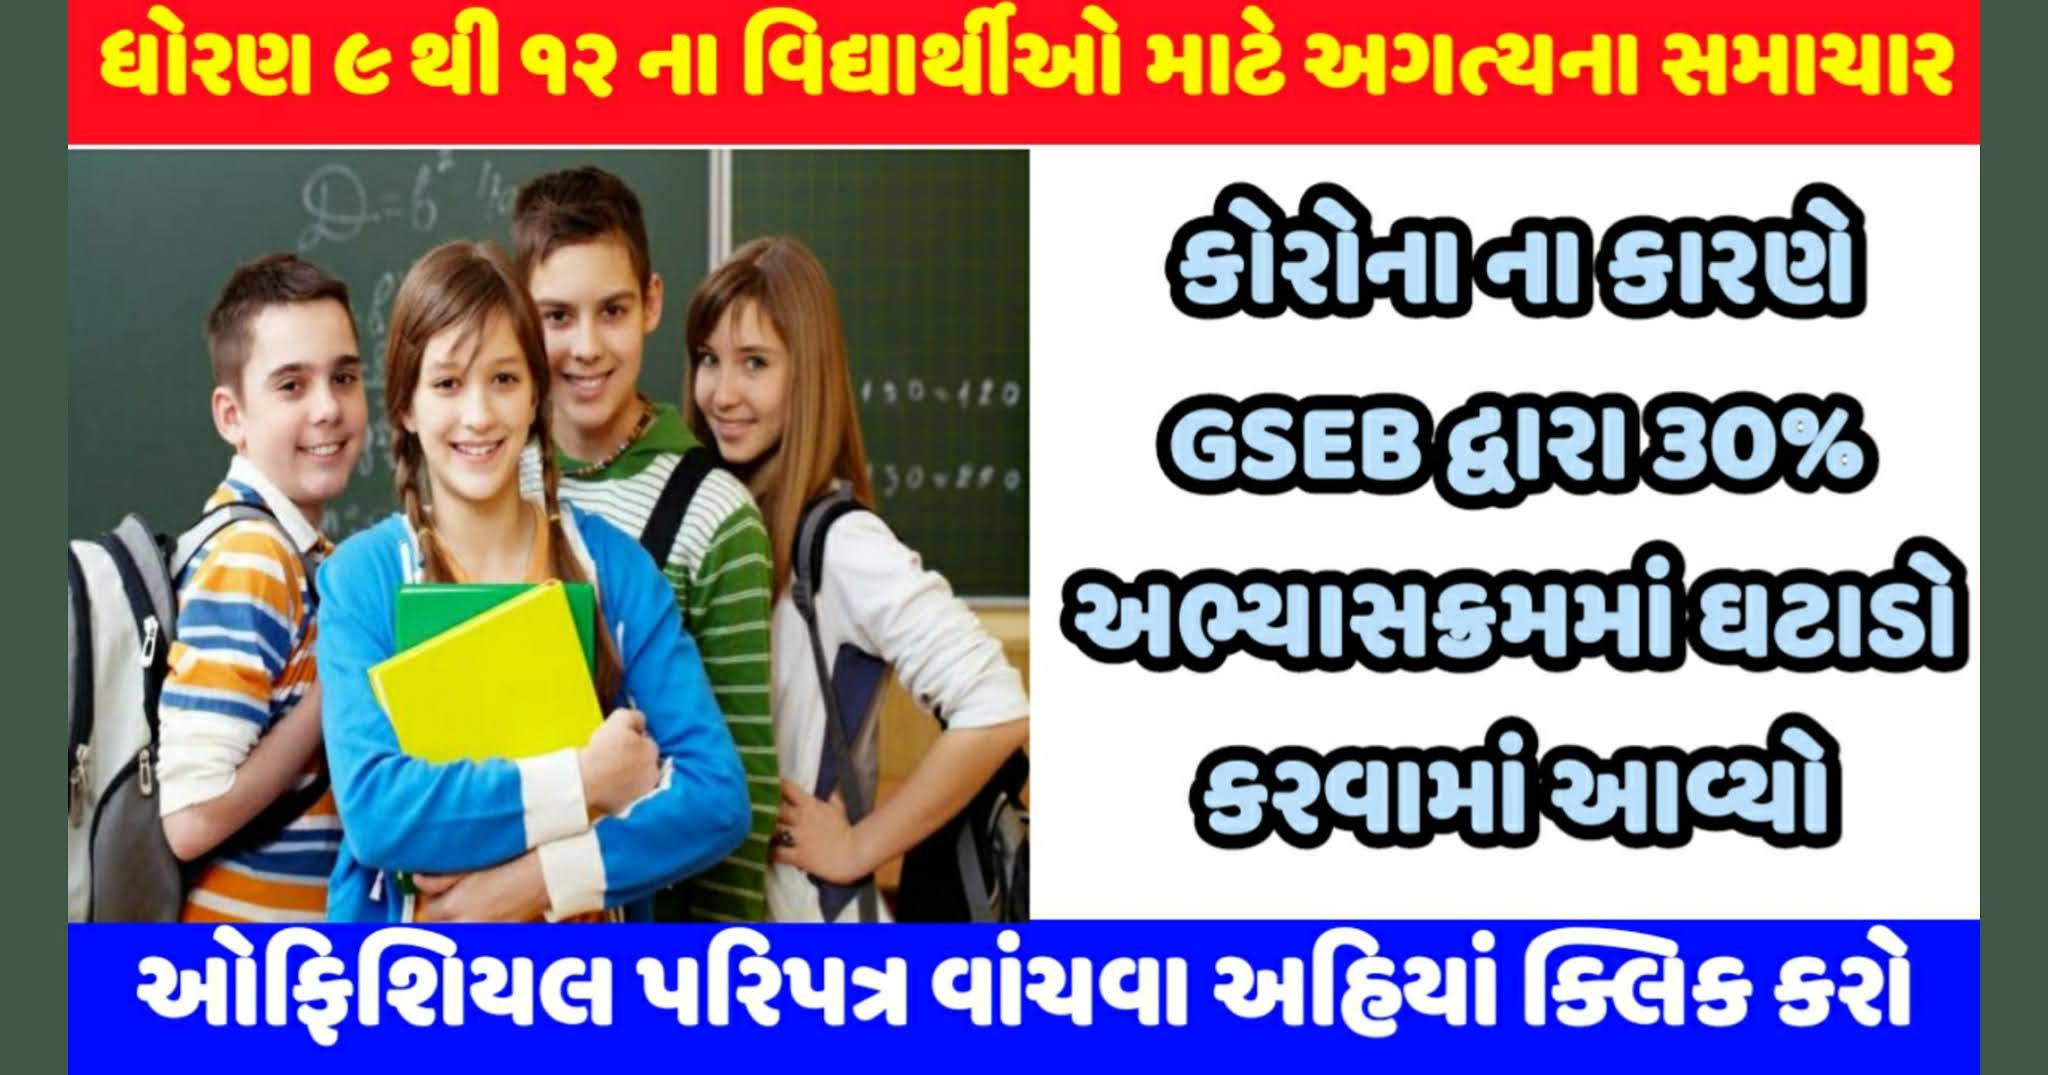 GSEB Reduced The Syllabus By 30% In Standard 9 To 12